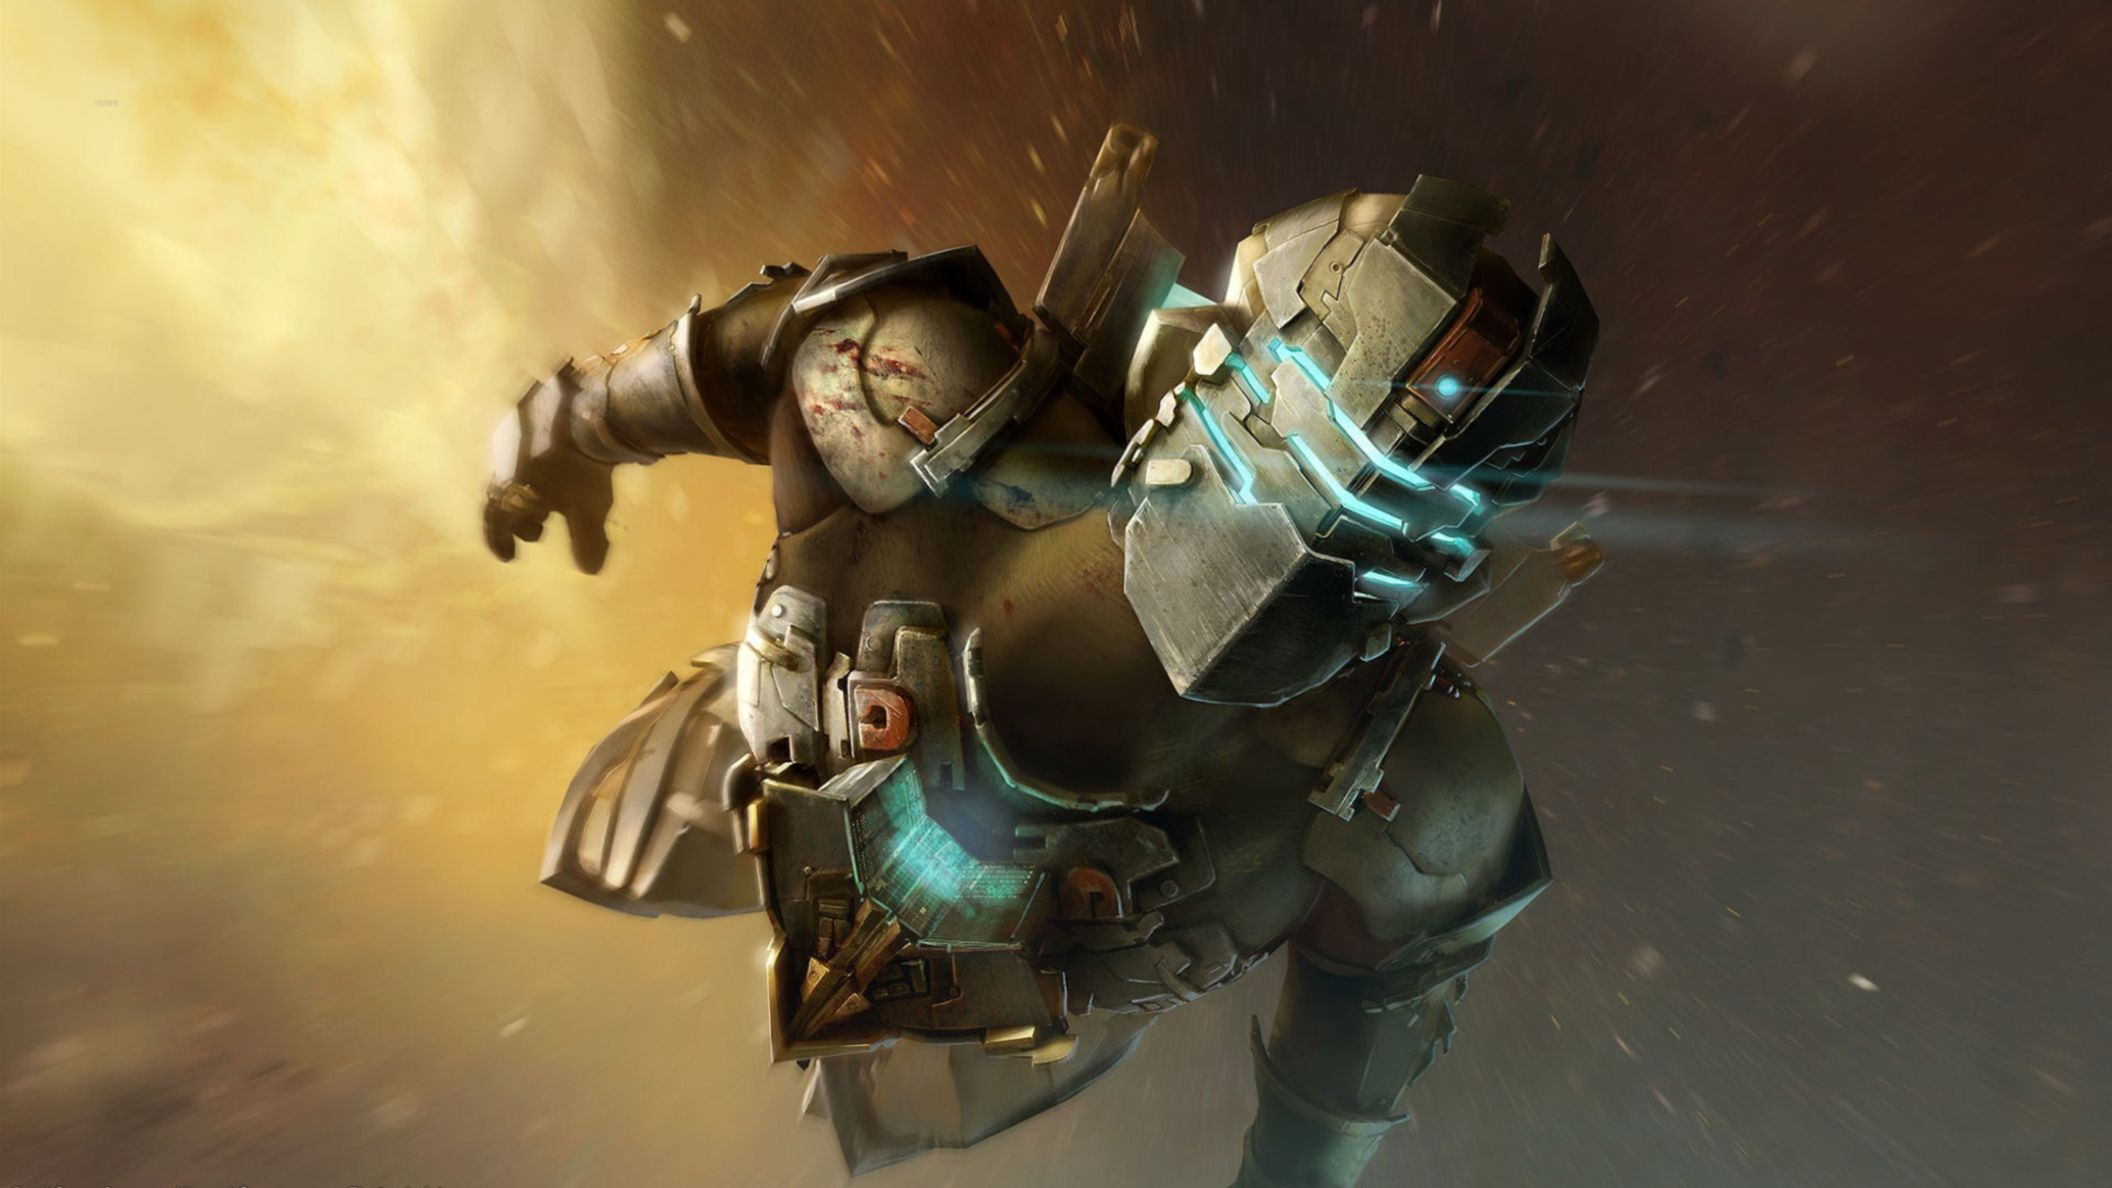 Download free HD Dead Space 3 HD Wallpaper, image